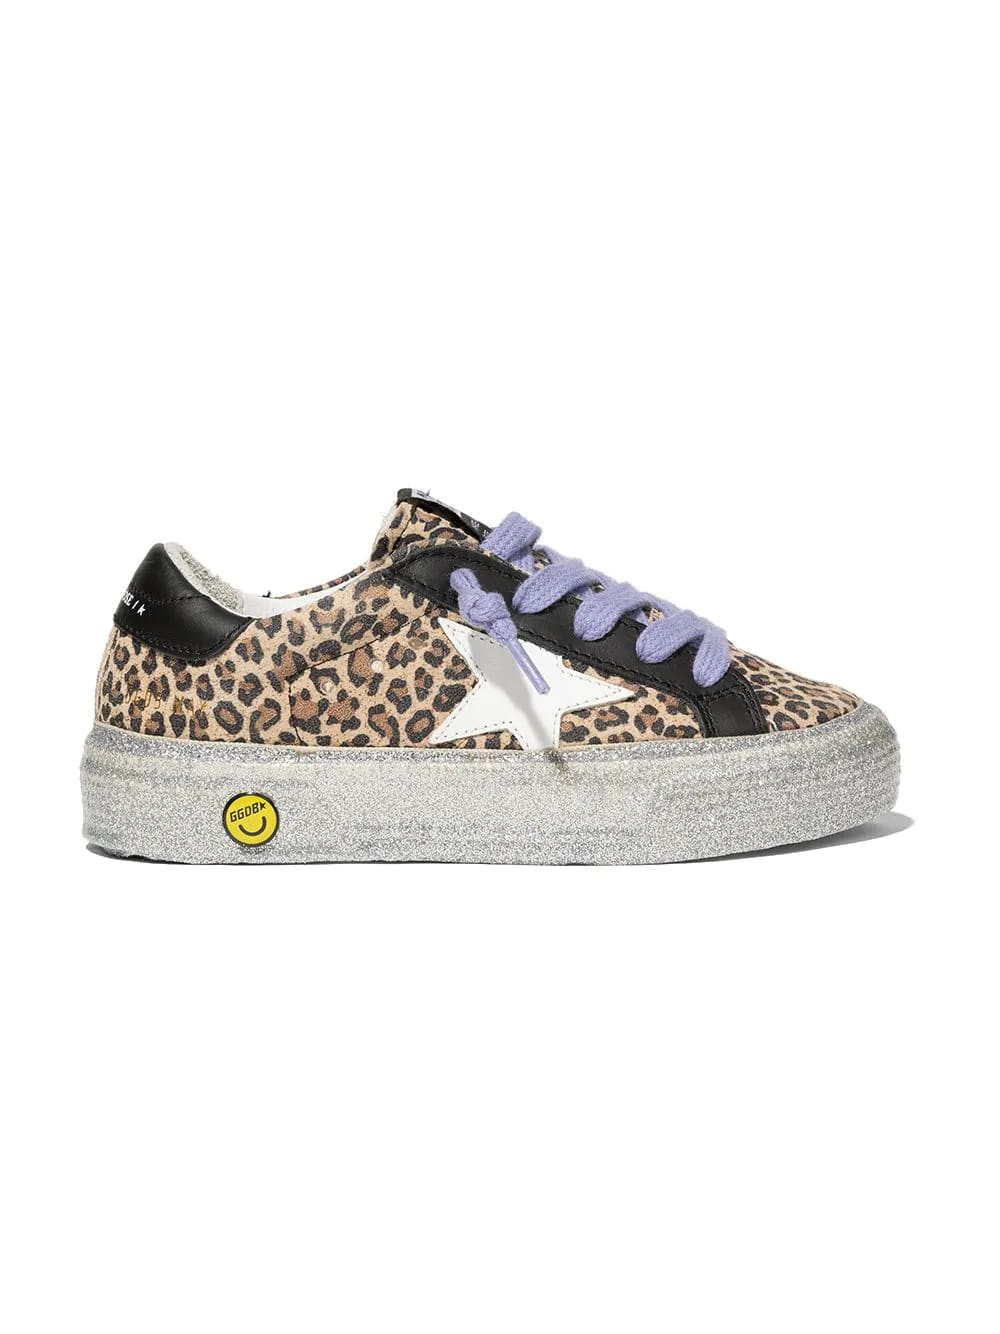 Golden Goose Junior Leopard May Sneakers With Lilac Laces And Silver Glittered Sole